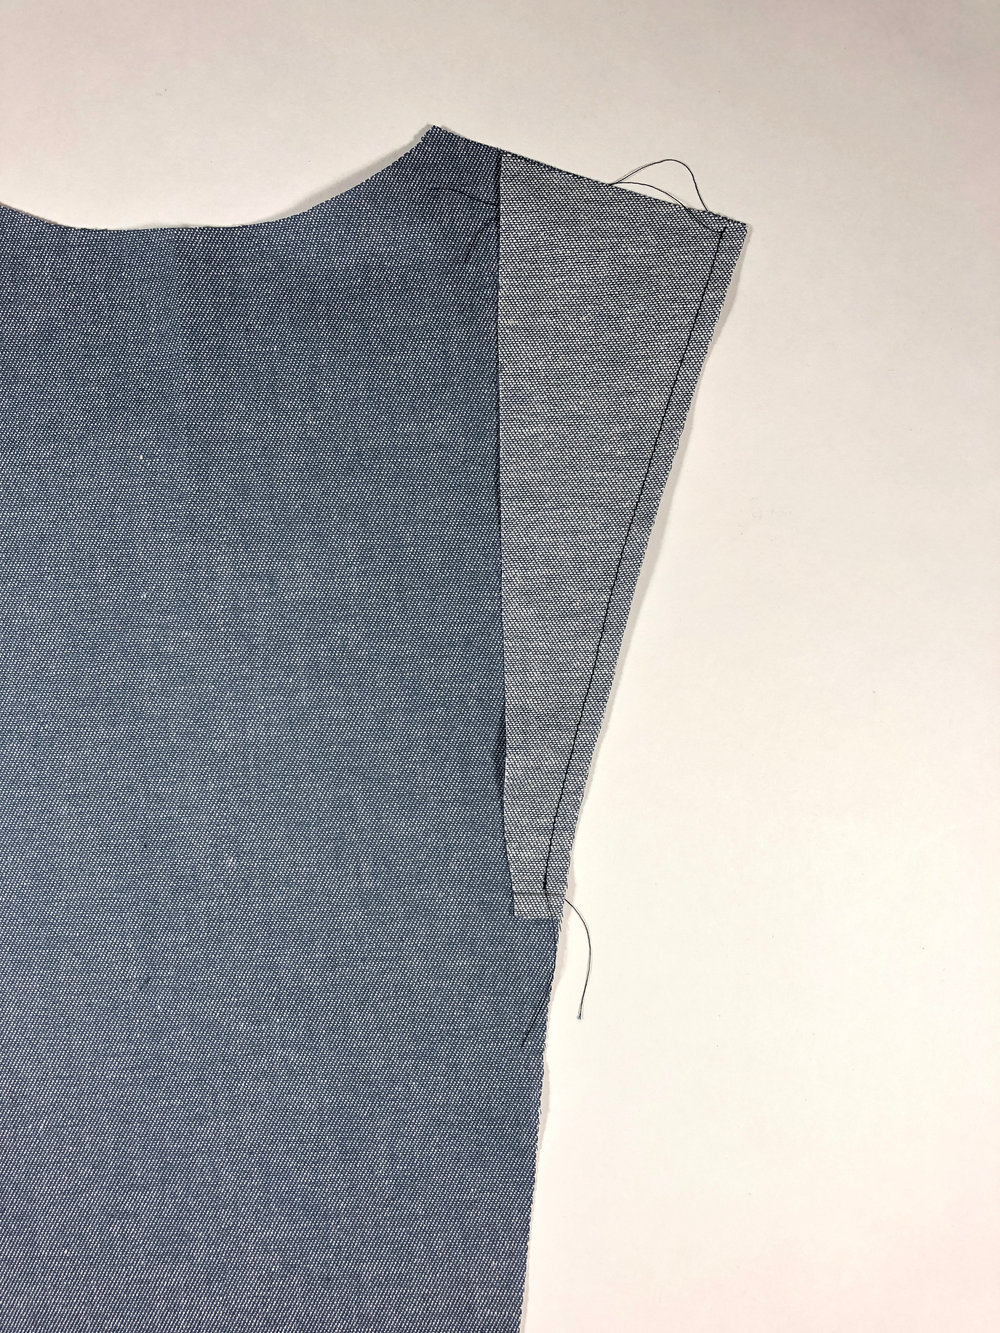 "24. With right sides together, stitch center back panel to pleat with 1/4"" seam allowance, stopping 1/4"" from the bottom of the pleat."